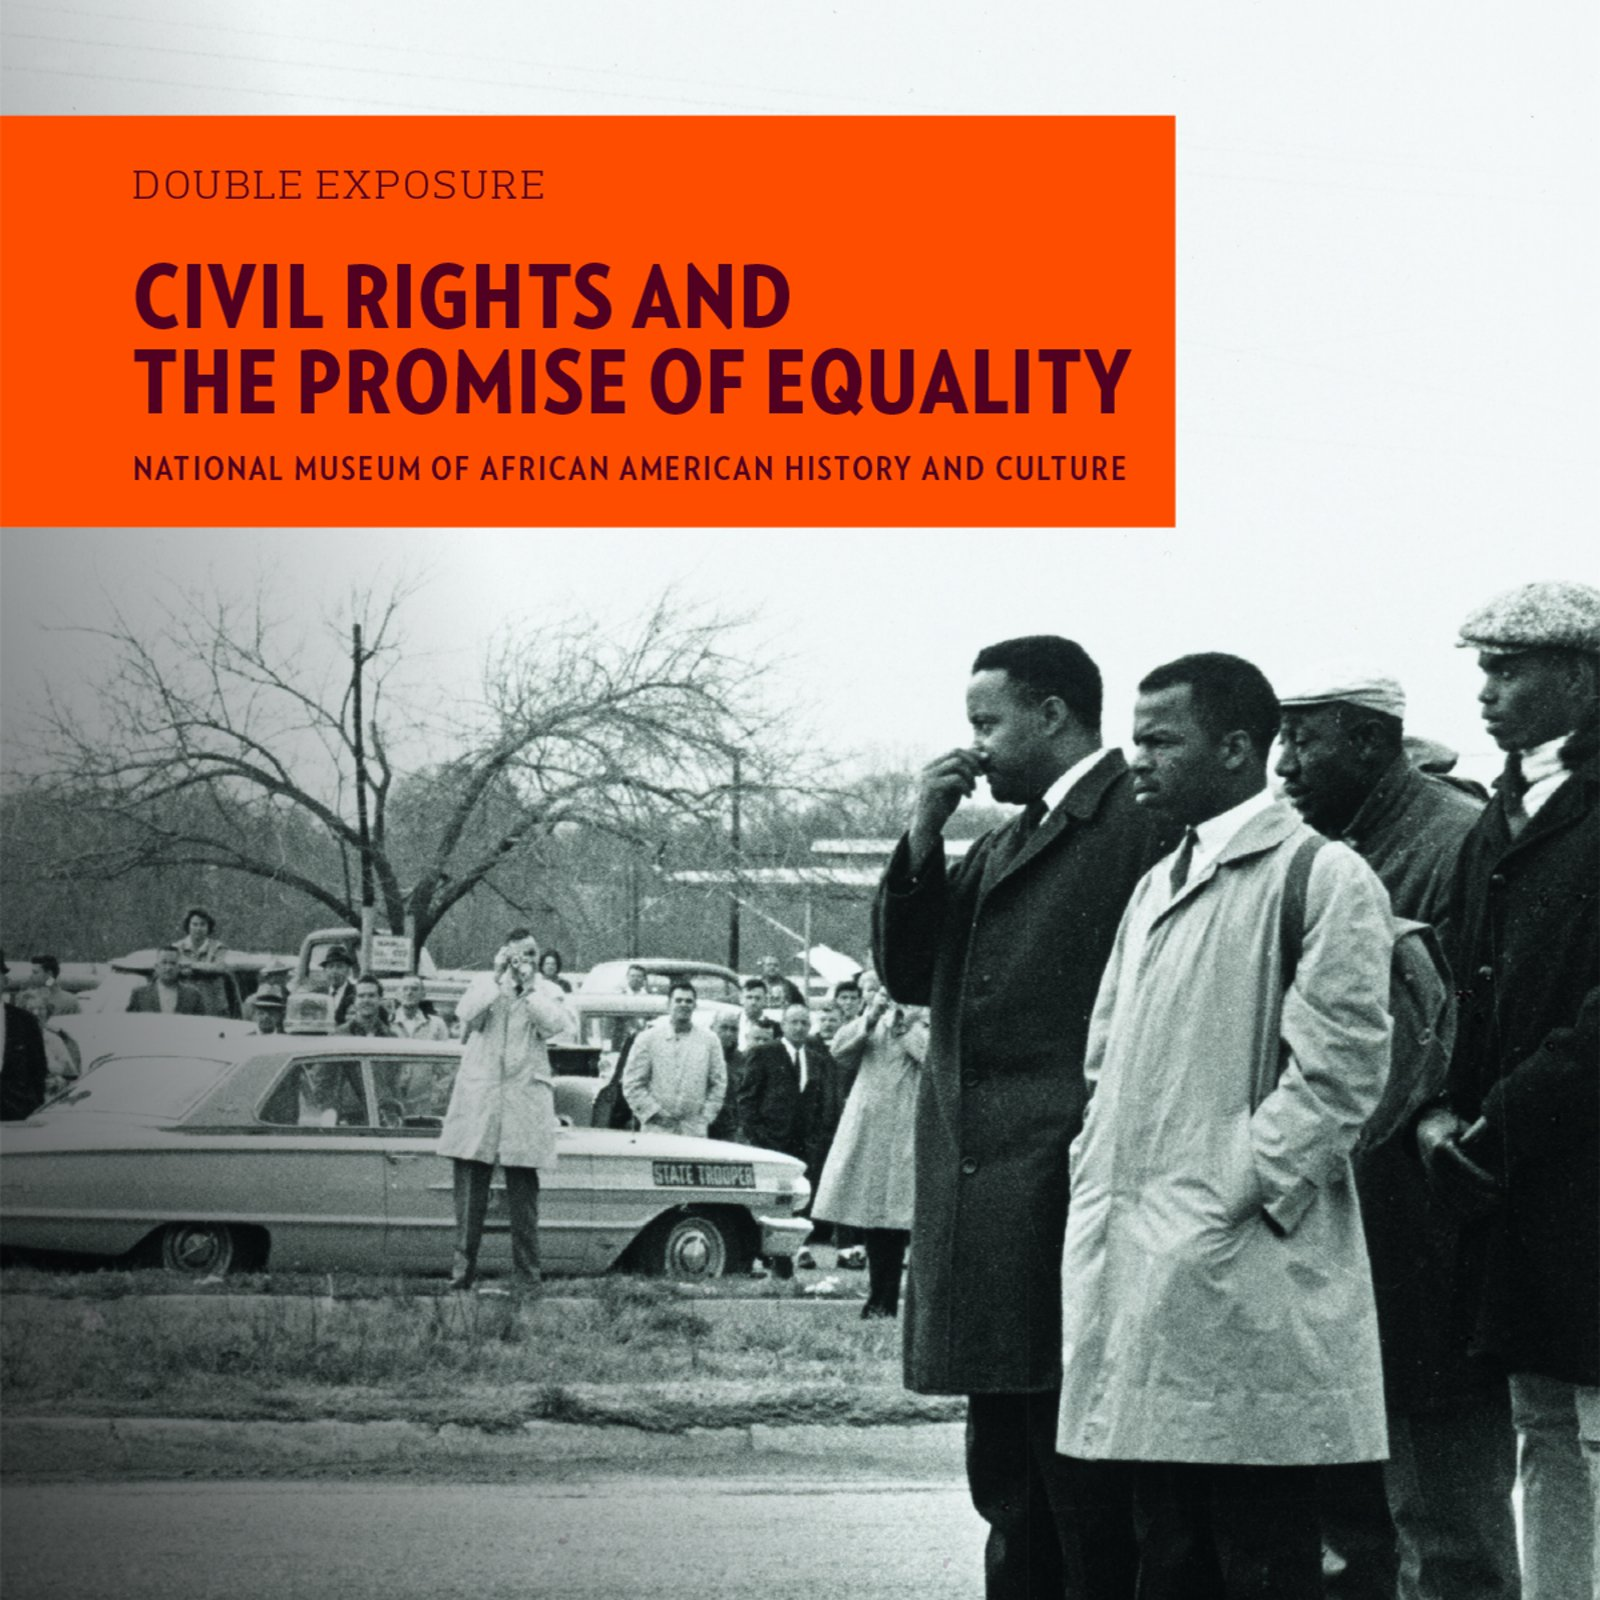 Download Civil Rights and the Promise of Equality (Double Exposure) pdf